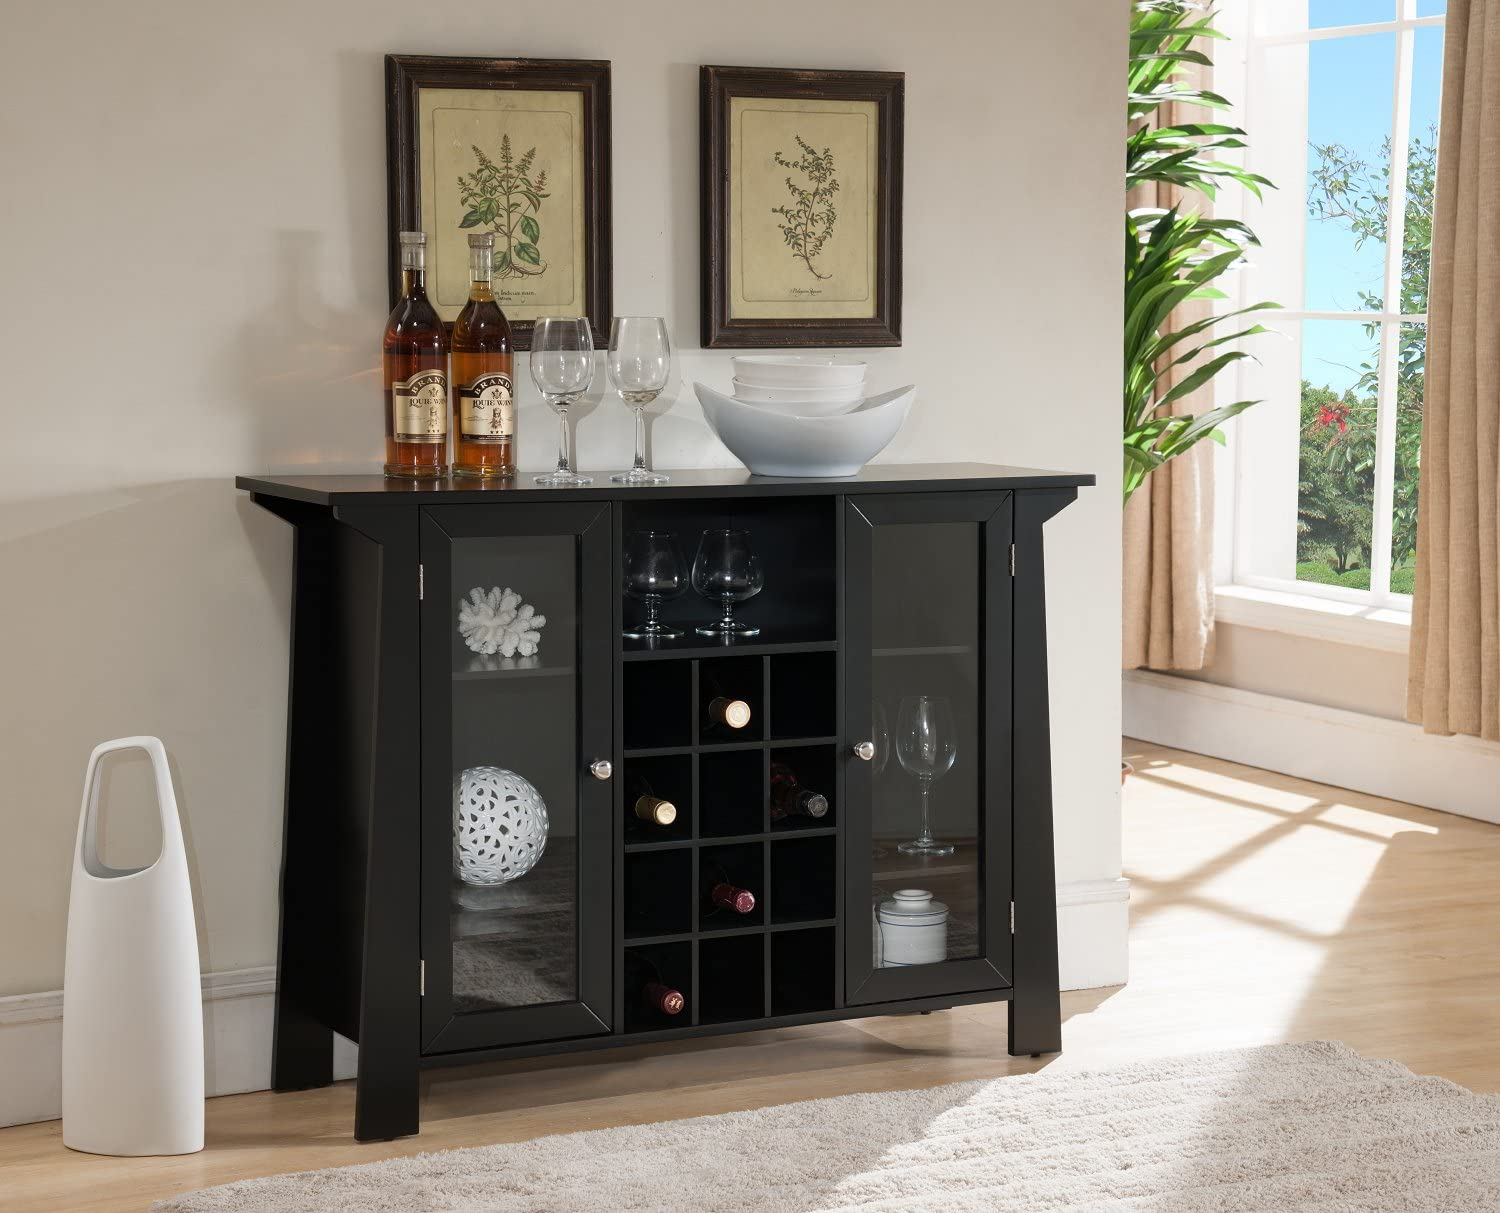 Kings Brand Furniture Matanuska Wood Buffet Bar Cabinet with Wine Storage, Black